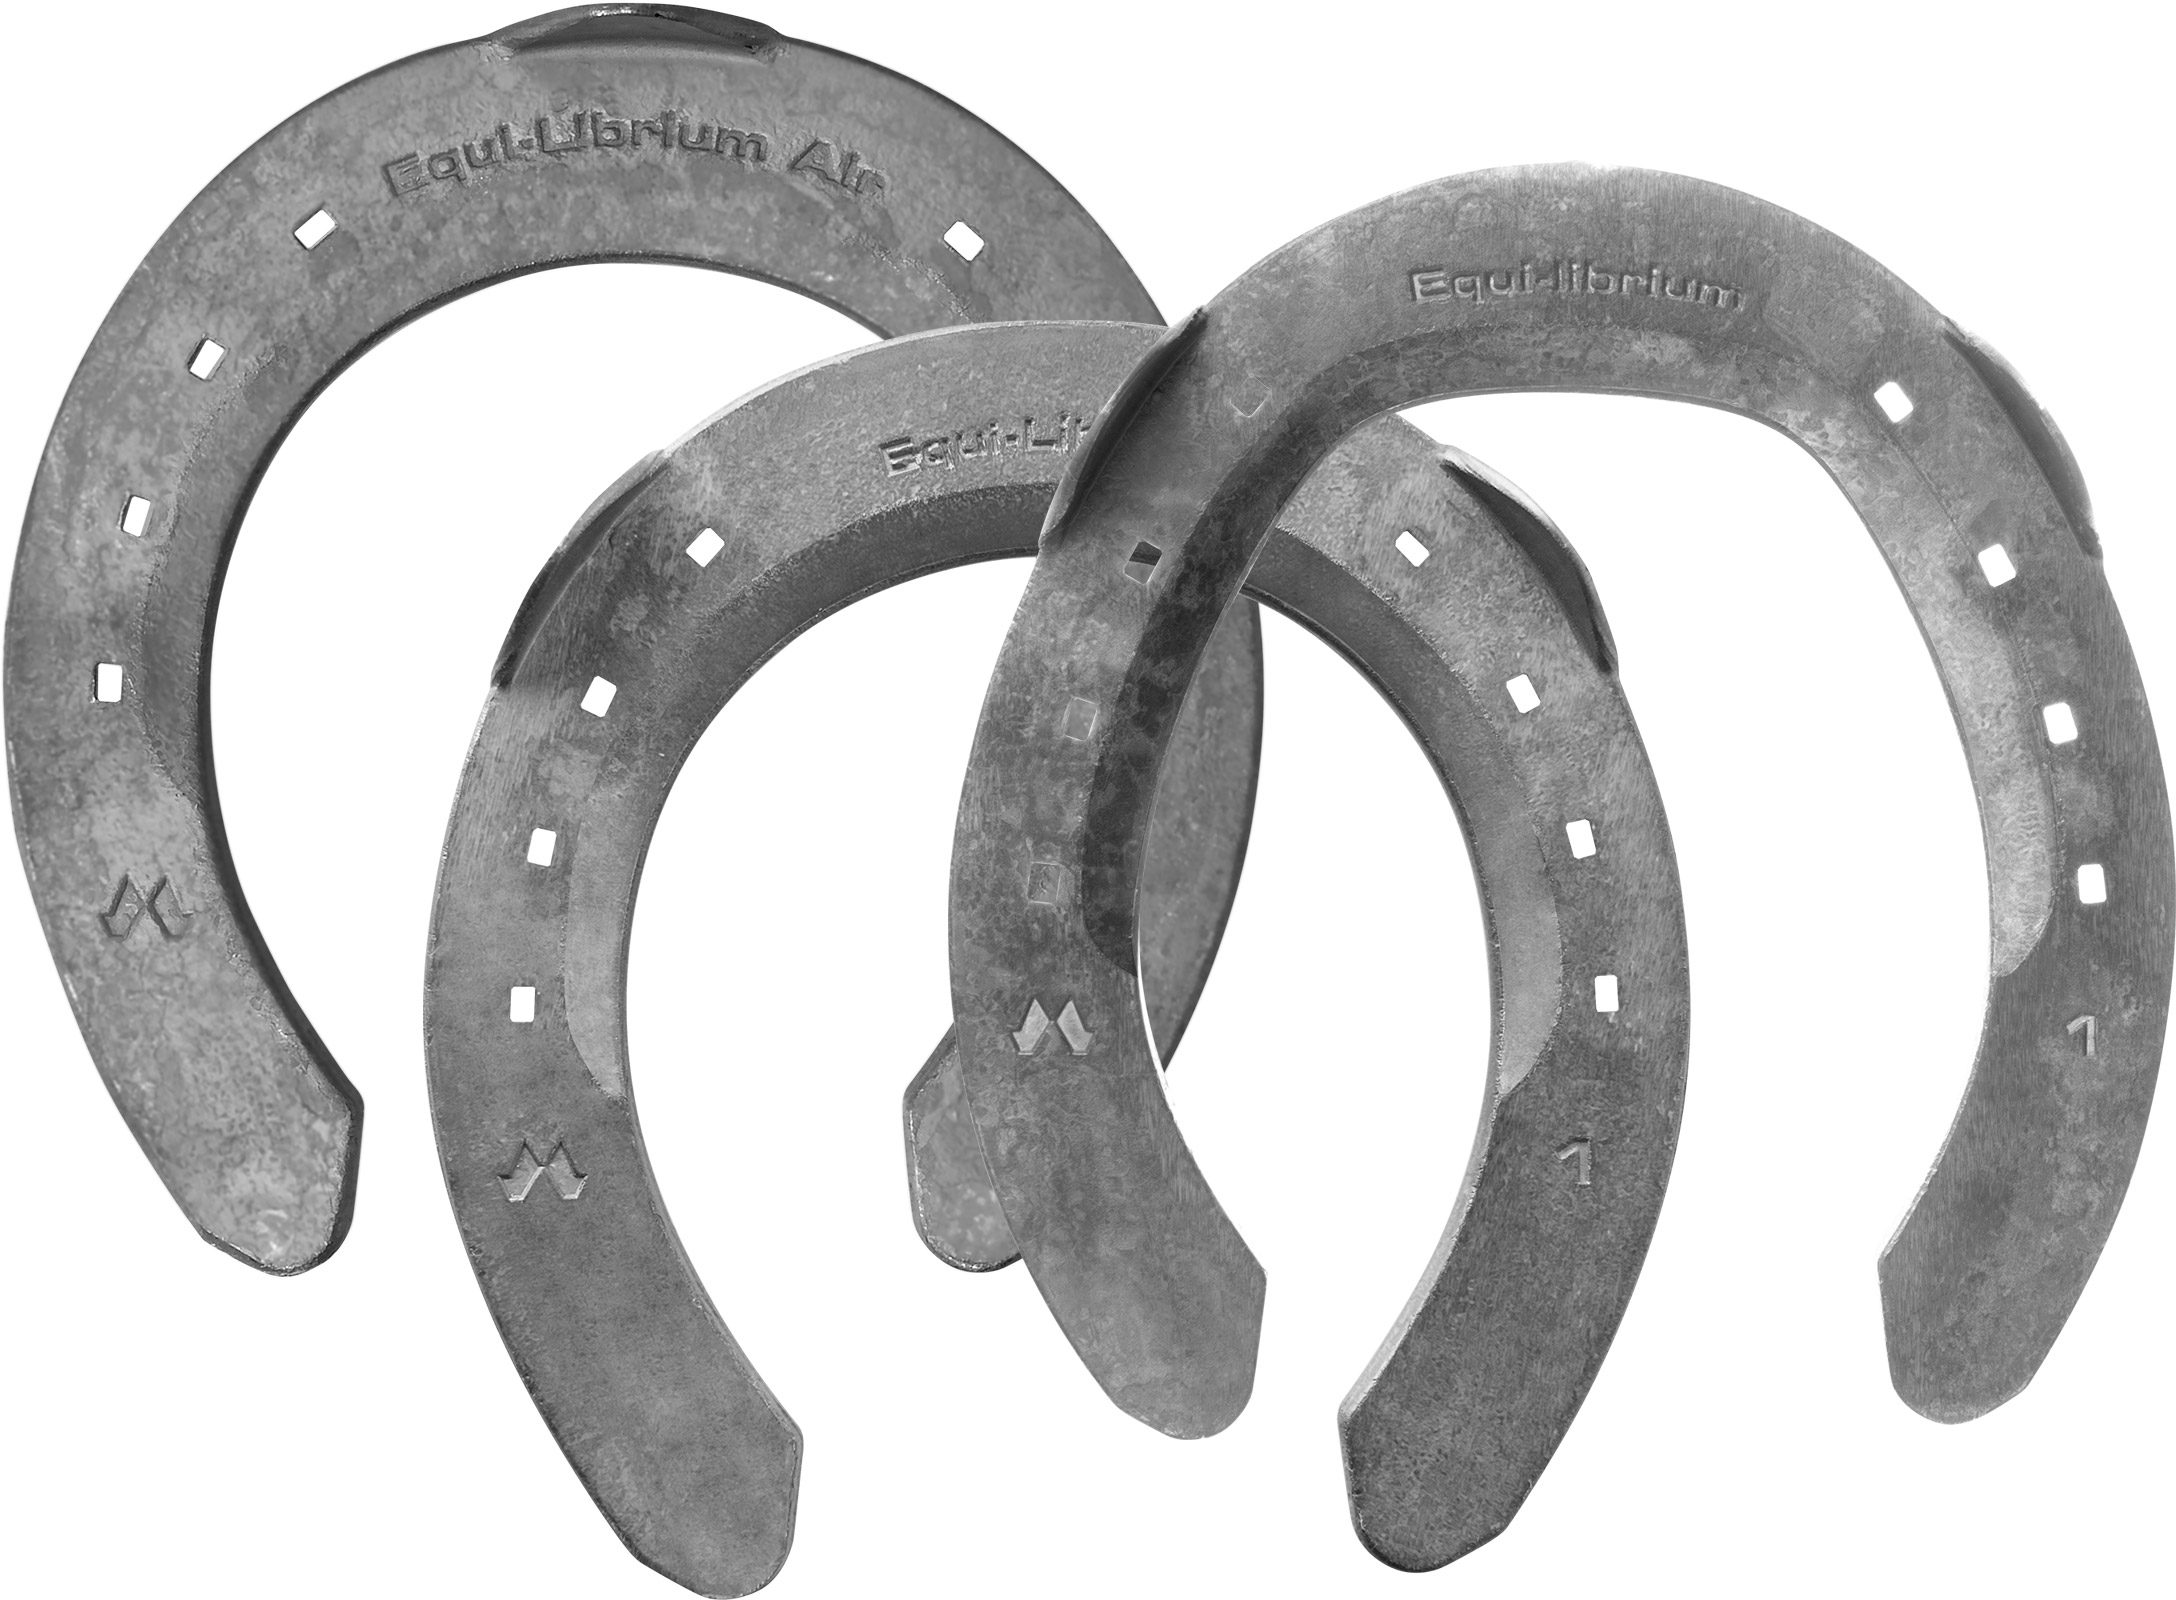 Mustad Equi-Librium Air horseshoes, front and hind, top view